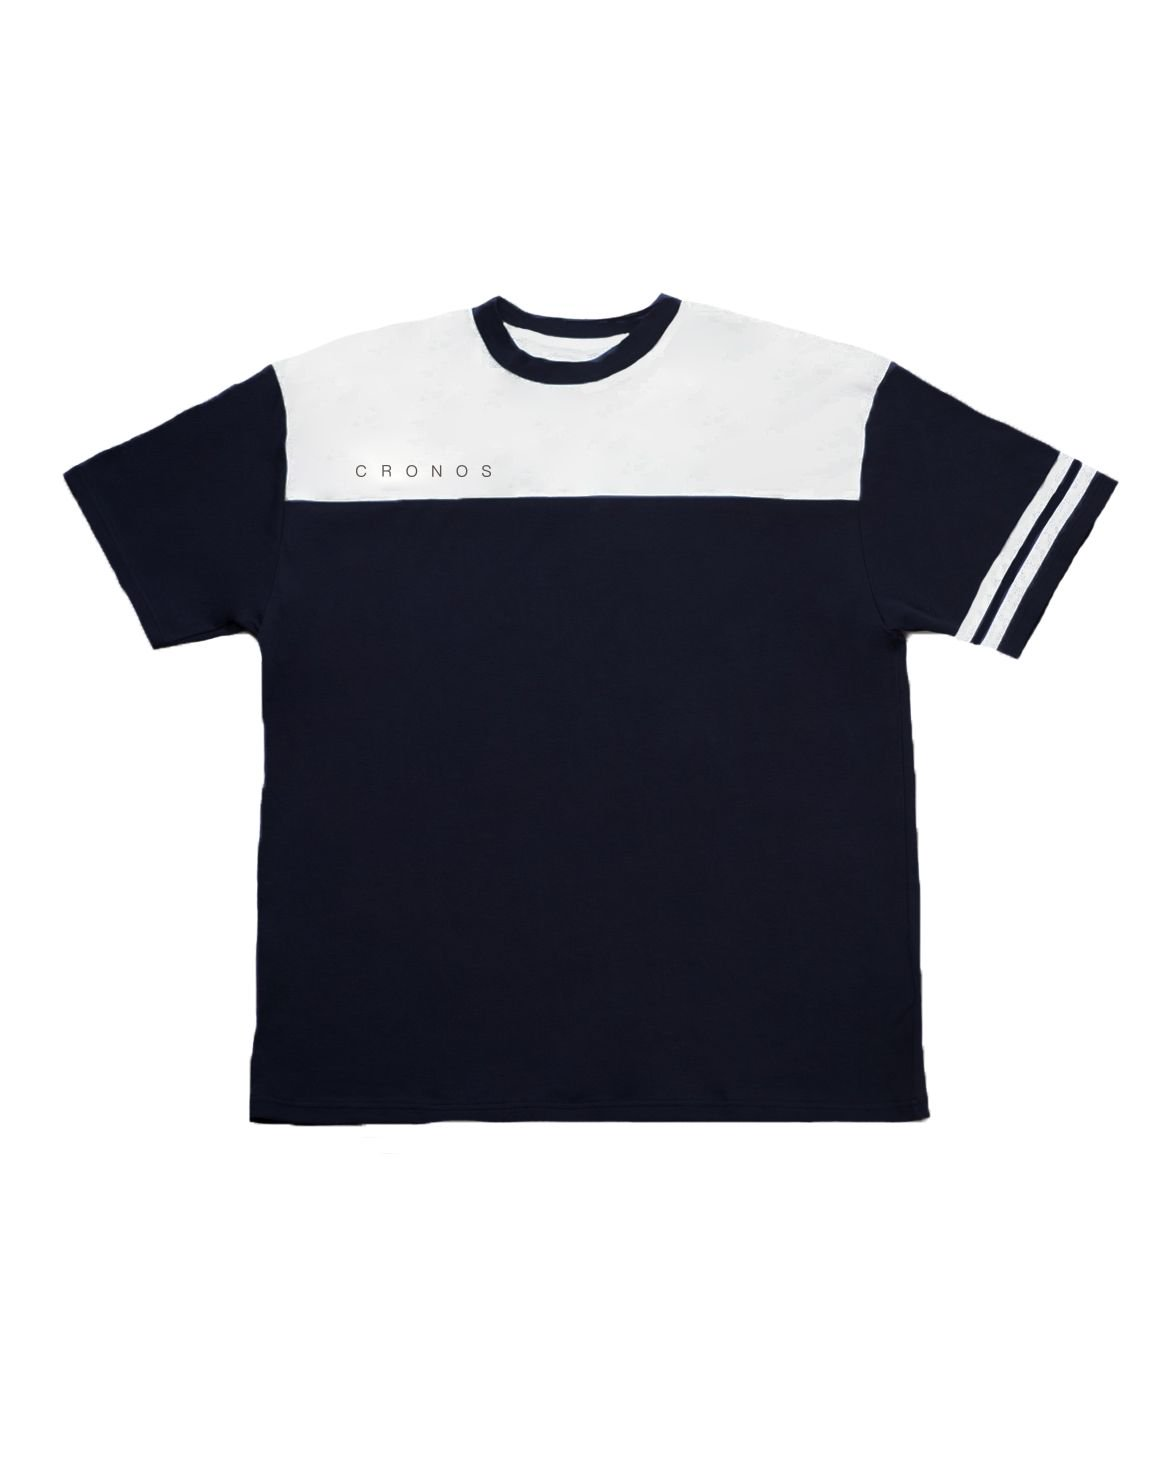 <img class='new_mark_img1' src='https://img.shop-pro.jp/img/new/icons55.gif' style='border:none;display:inline;margin:0px;padding:0px;width:auto;' />CRONOS Bi-COLOR SLEEVE LINE OVER SIZE T-SHIRTS【BLACK】